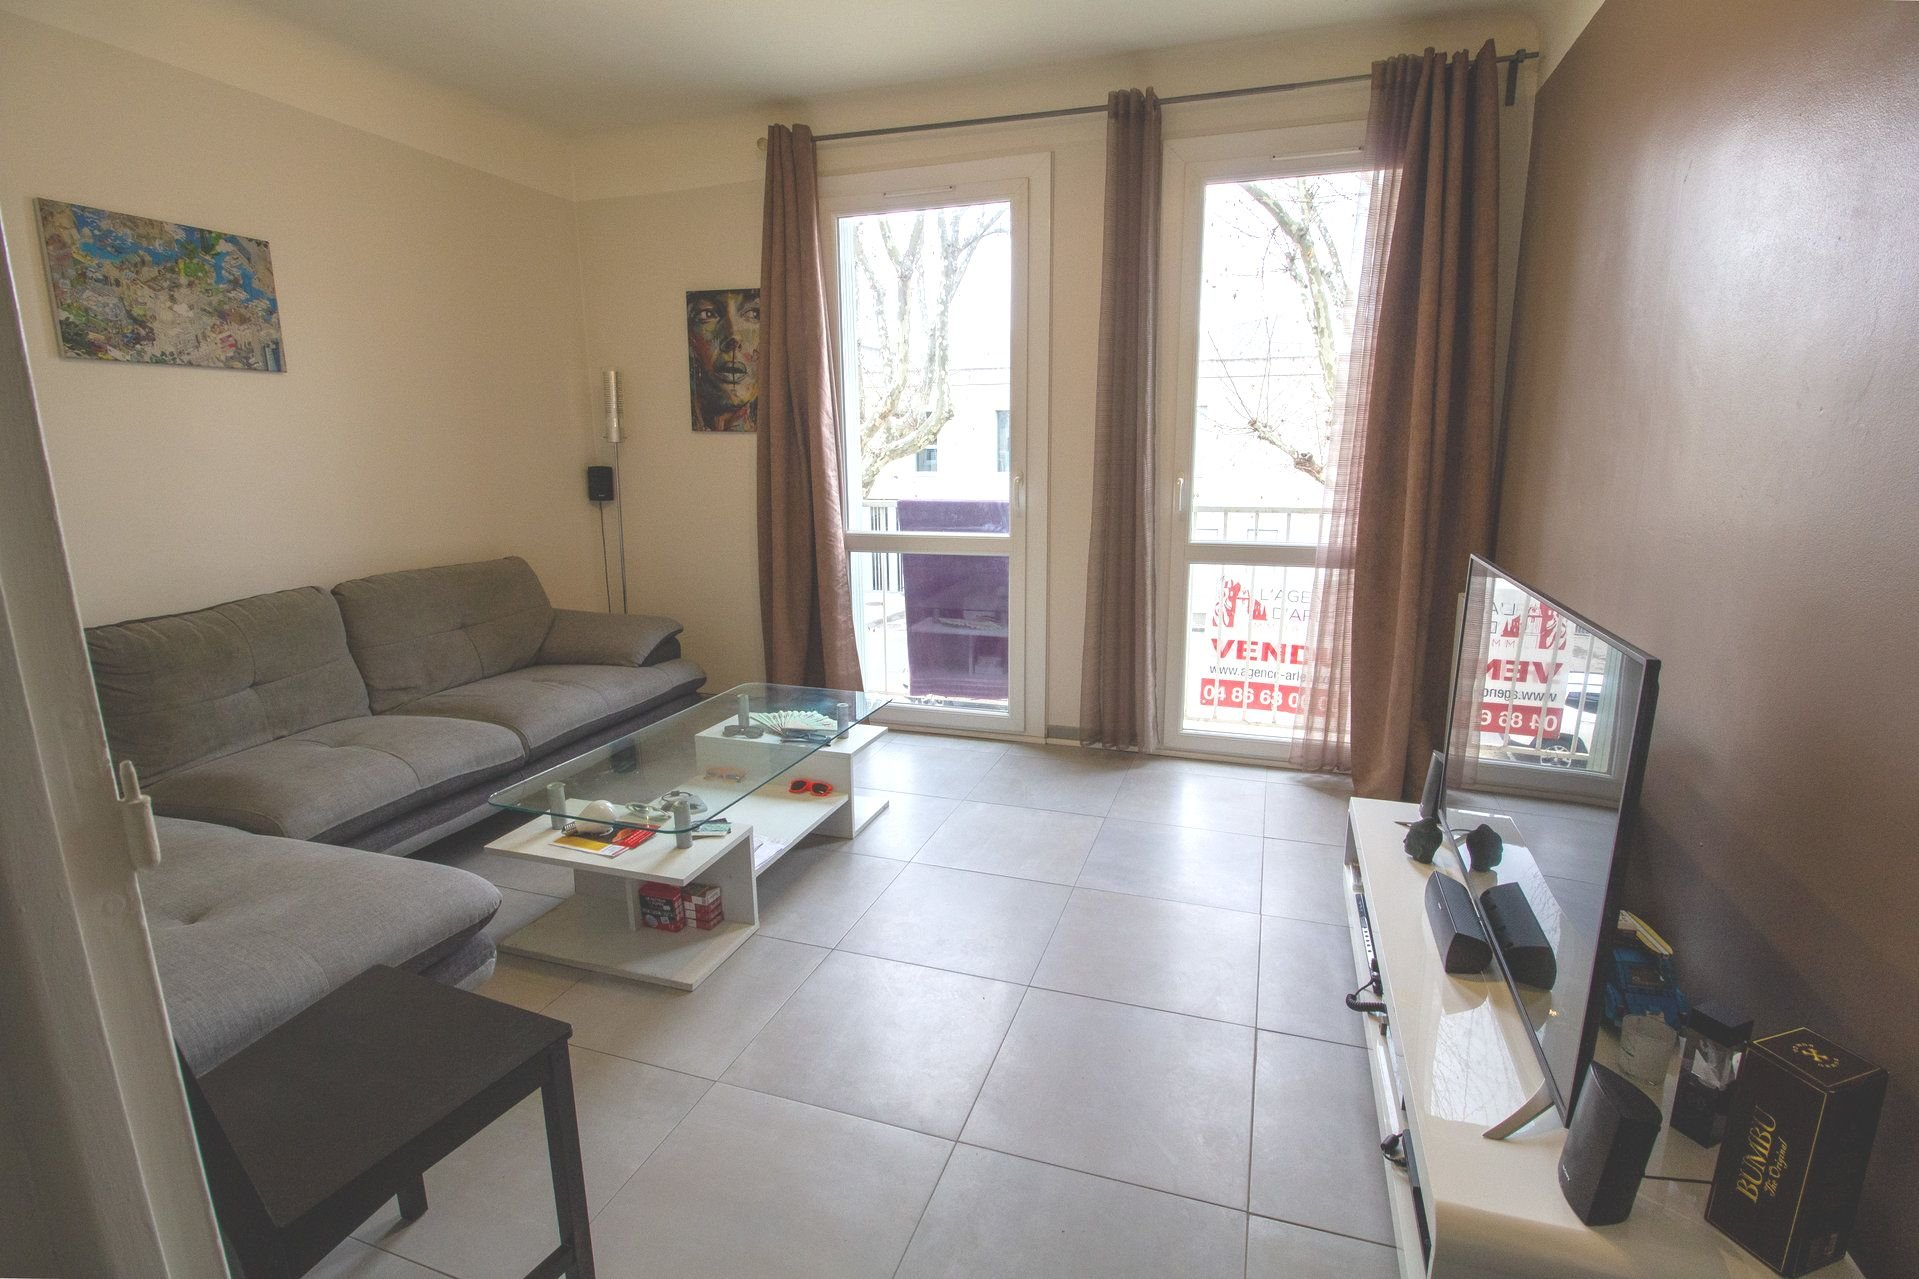 One bedroom apartment for sale in Arles close to historic center